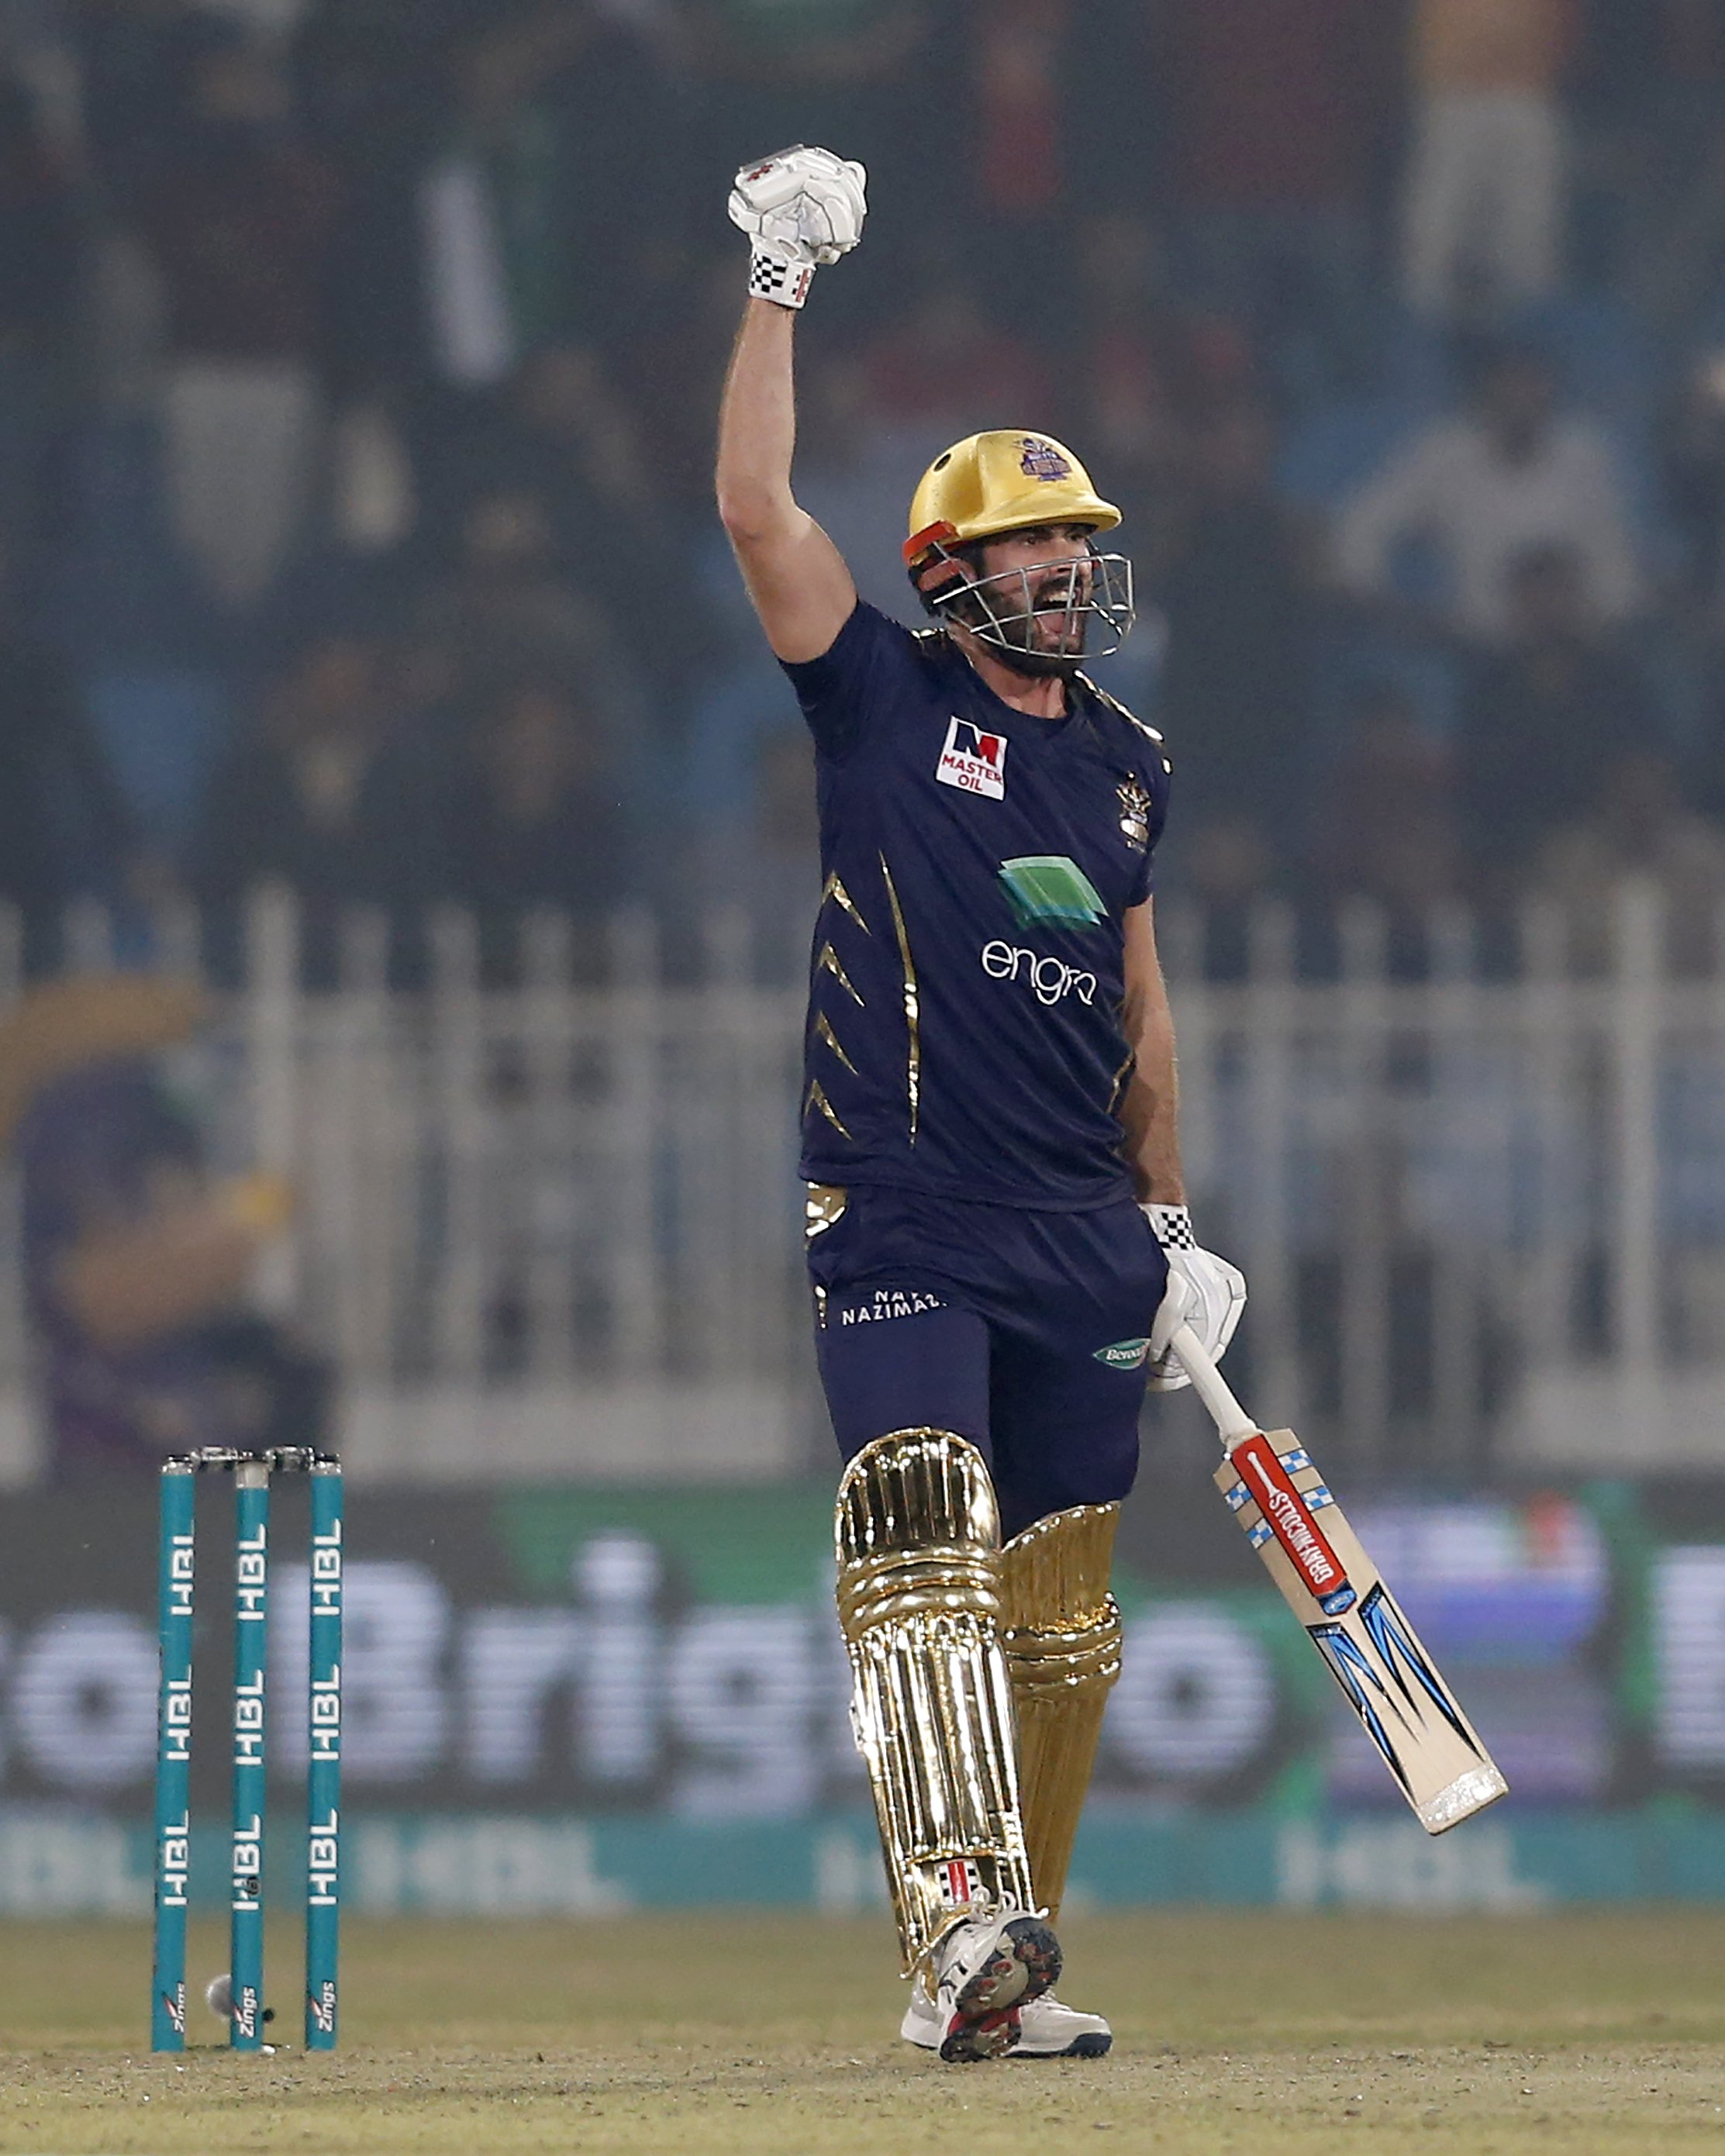 Cutting carries Quetta to win against Islamabad in PSL